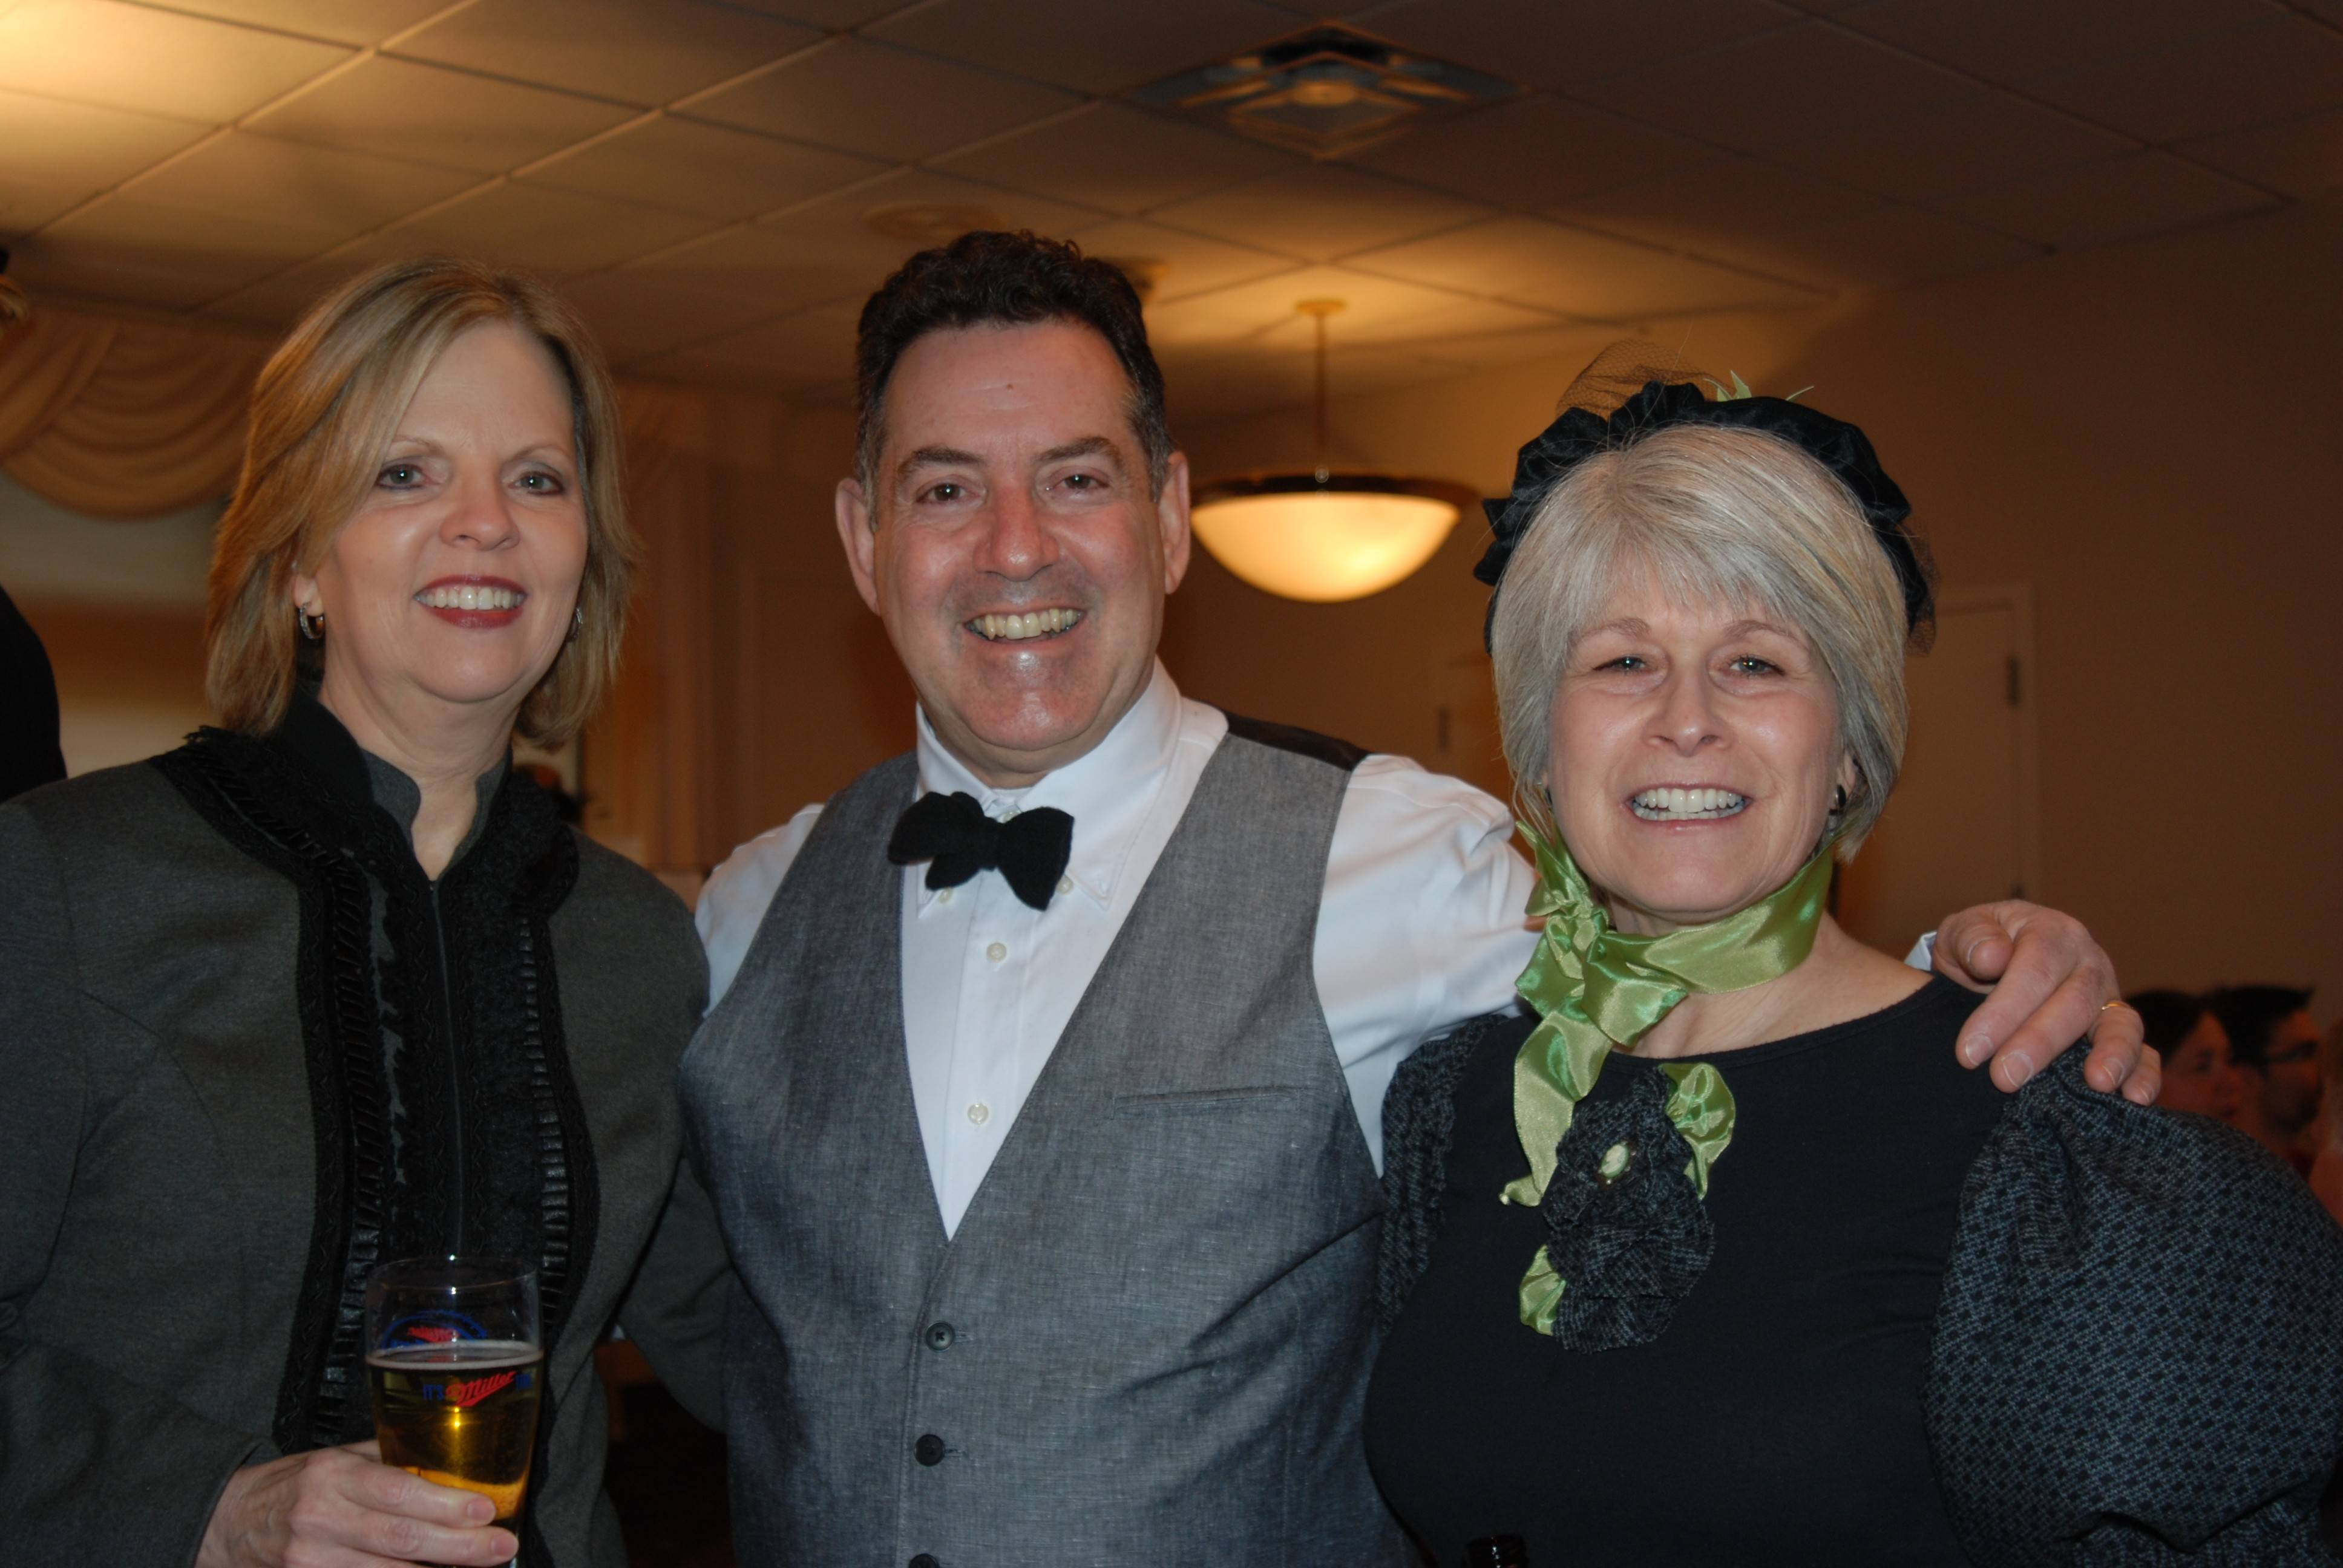 Janet Hengtgen, left, and Bob and Laurie Roubitchek, all of Mount Prospect, chatted before the History in the Headlines dinner, co-sponsored by the Mount Prospect Historical Society and River Trails Park District.